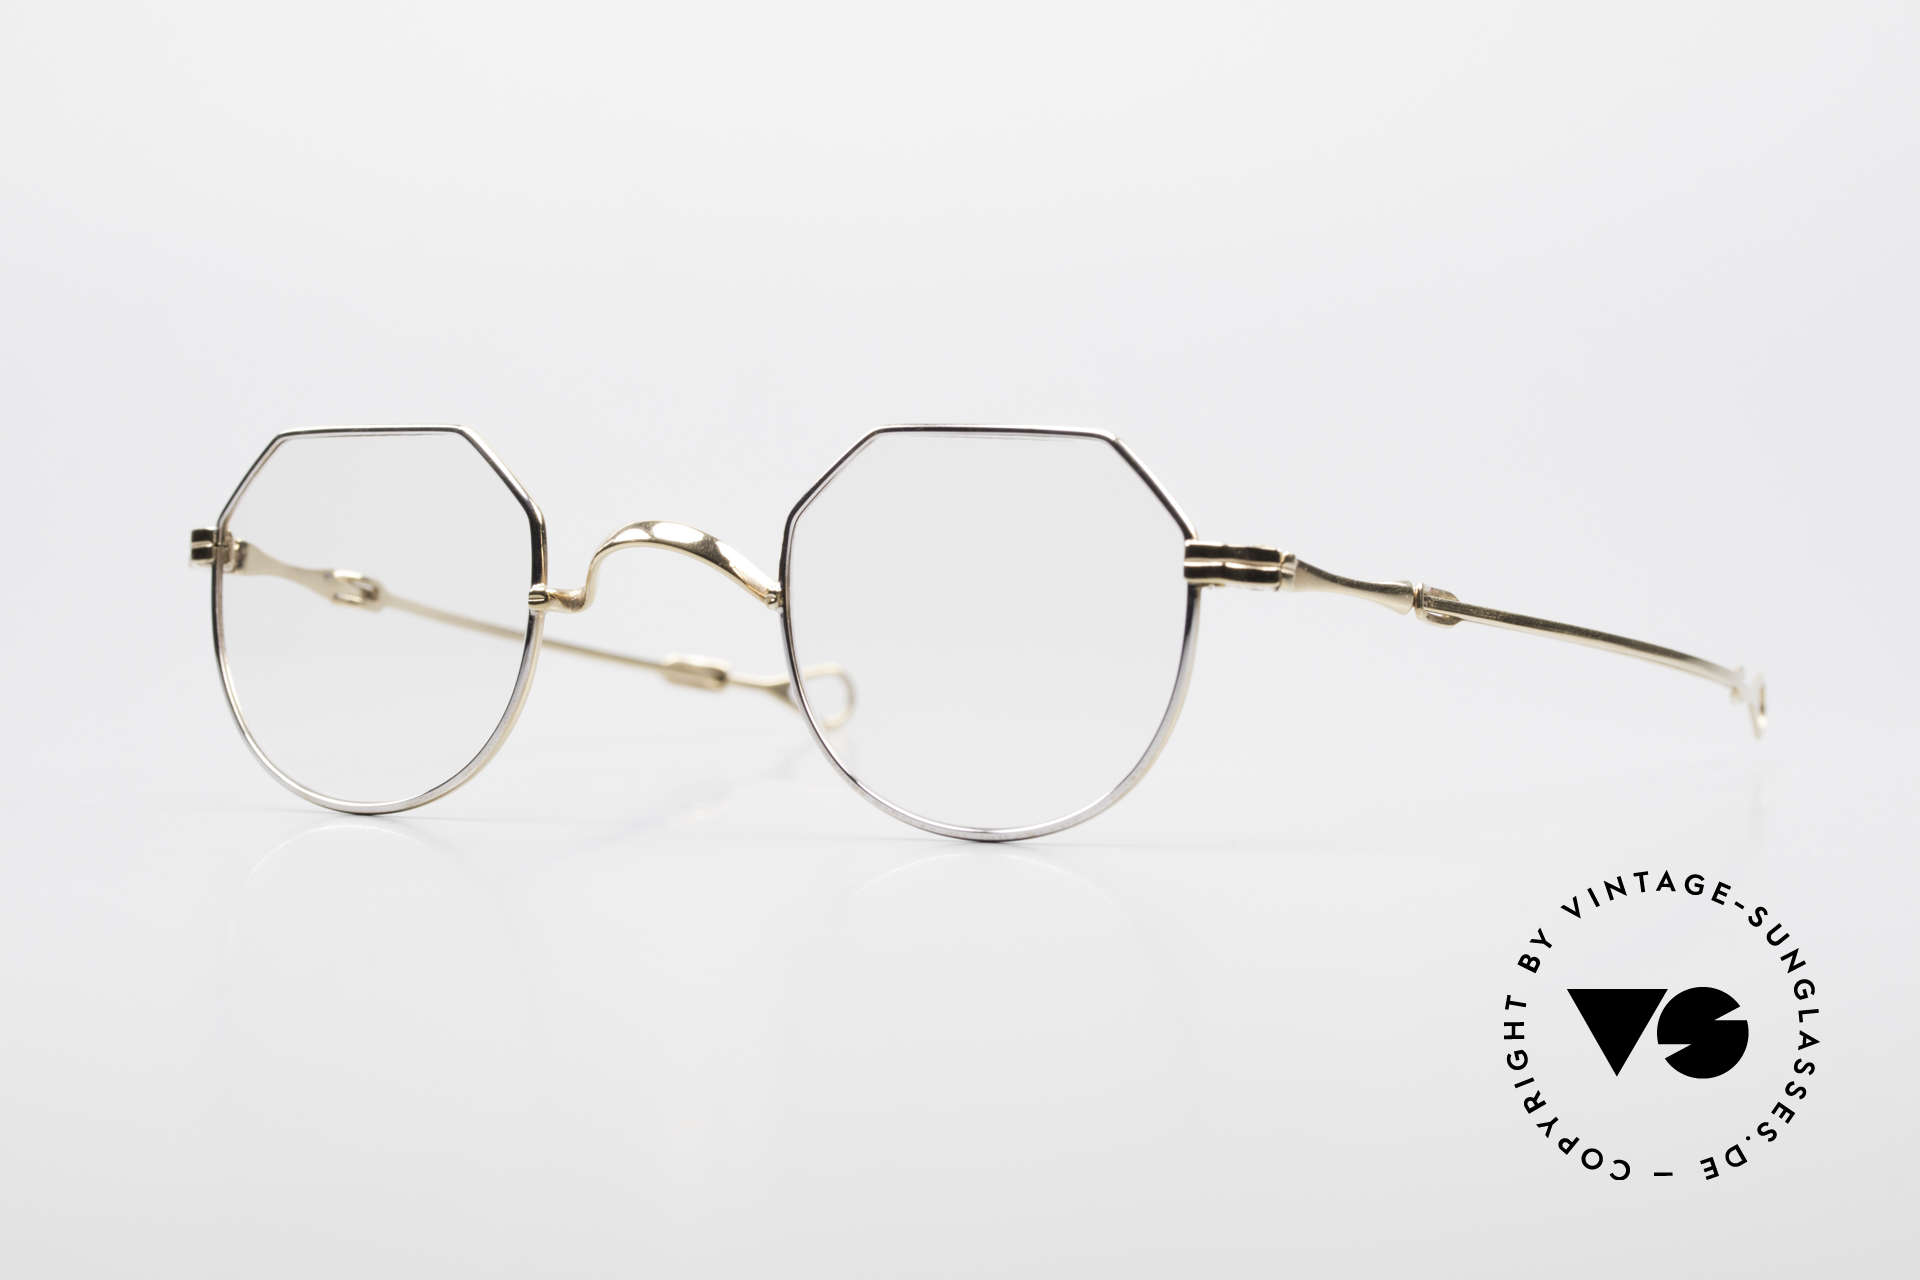 """Lunor I 18 Telescopic Glasses With Telescopic Arms, old LUNOR telescopic eyeglasses or """"sliding glasses', Made for Men and Women"""